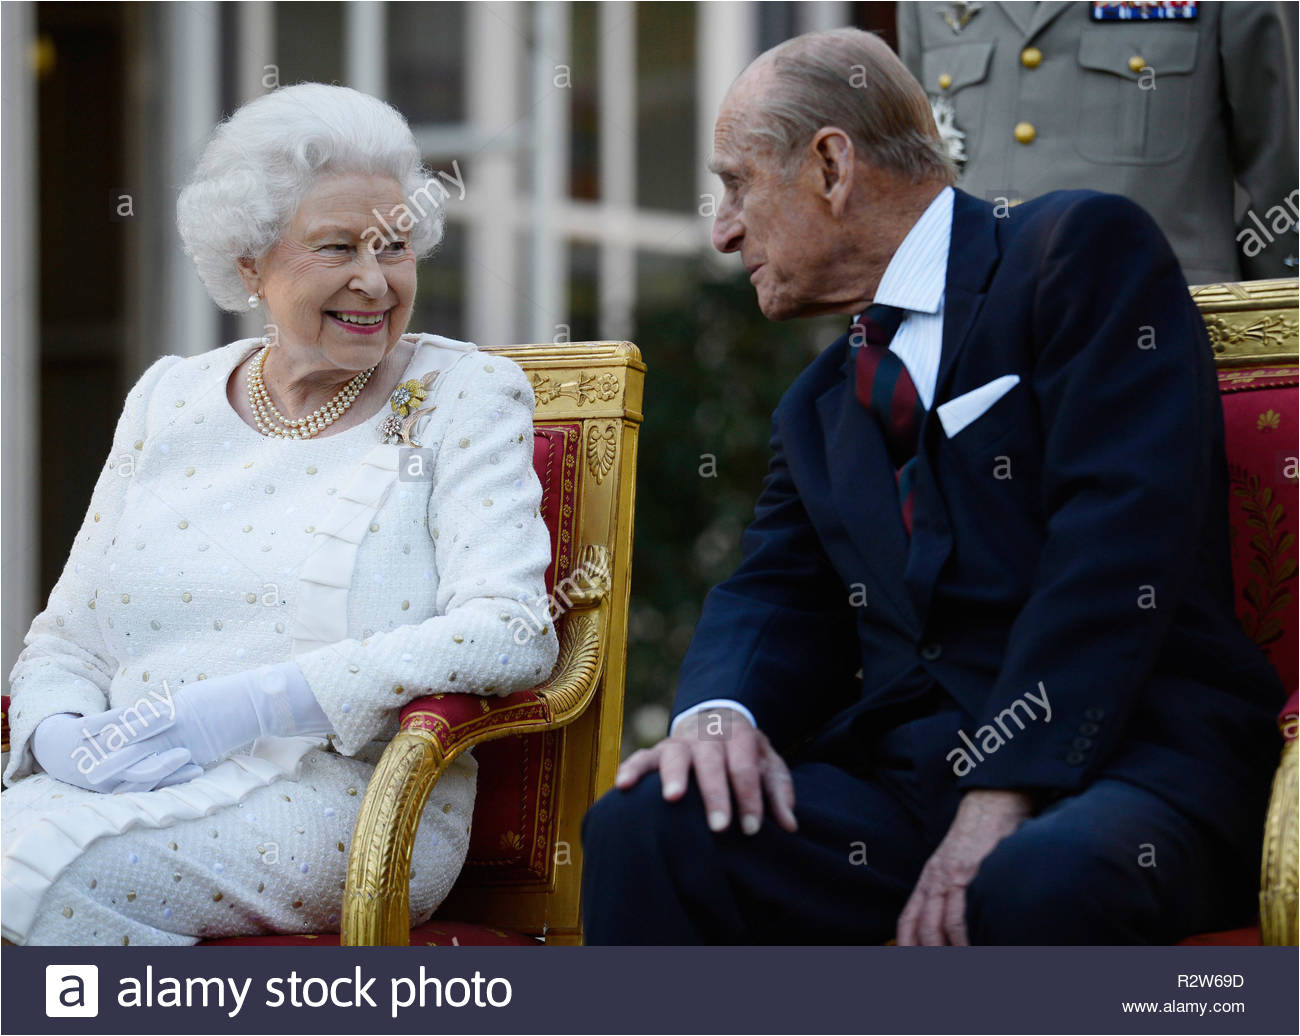 file photo dated 050614 of queen elizabeth ii and the duke of edinburgh the royal couple married on november 20 1947 at westminster abbey and are celebrating a rare achievement their 71st wedding anniversary r2w69d jpg